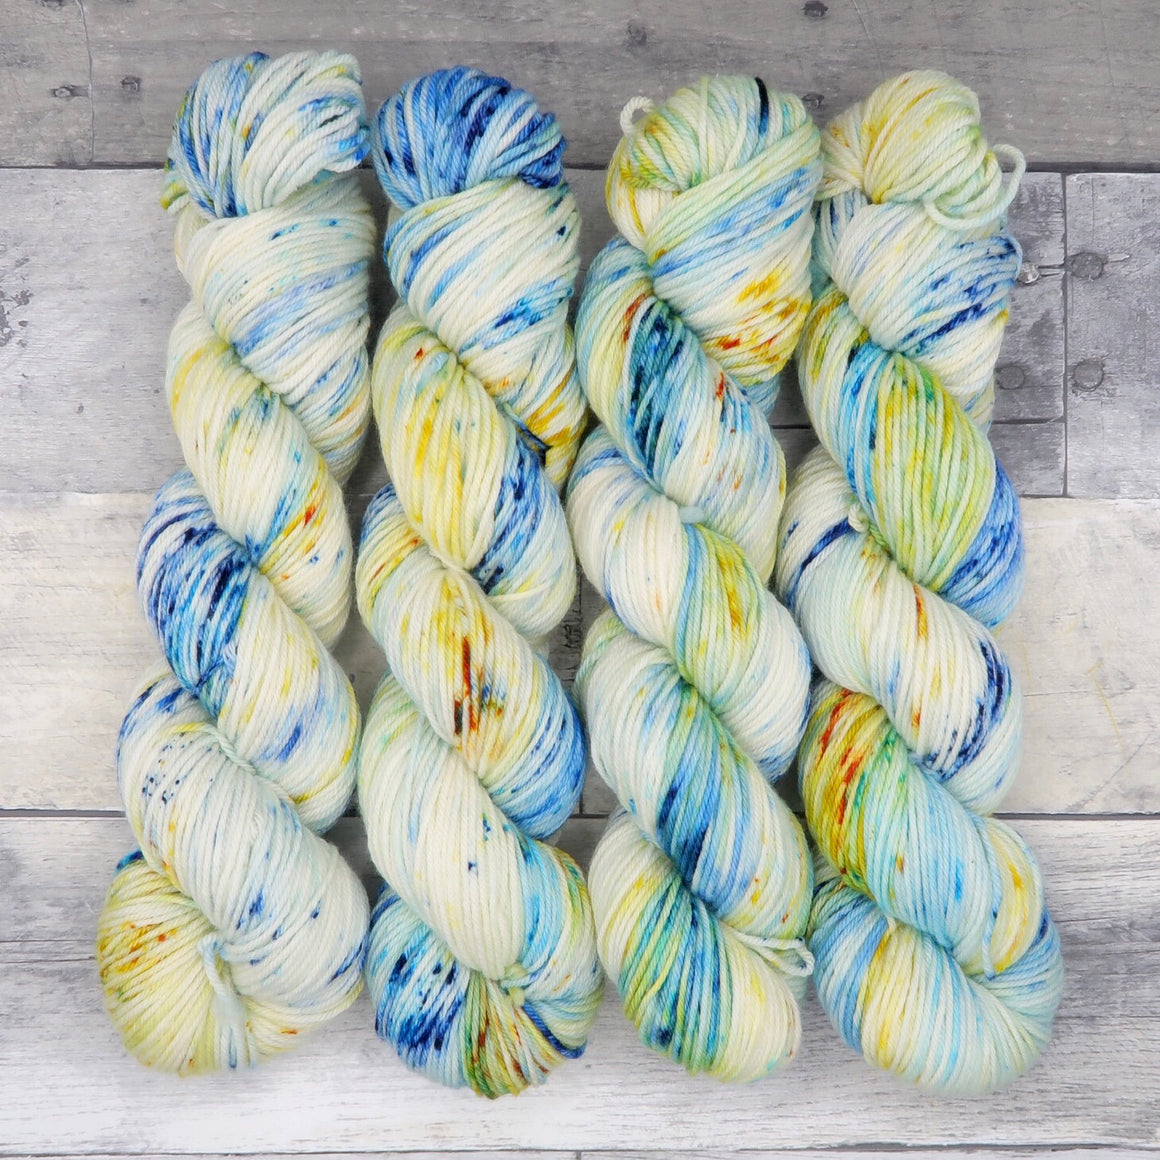 Mimblewimble (Merino DK, speckled variegated)- speckles of warm yellow and blue